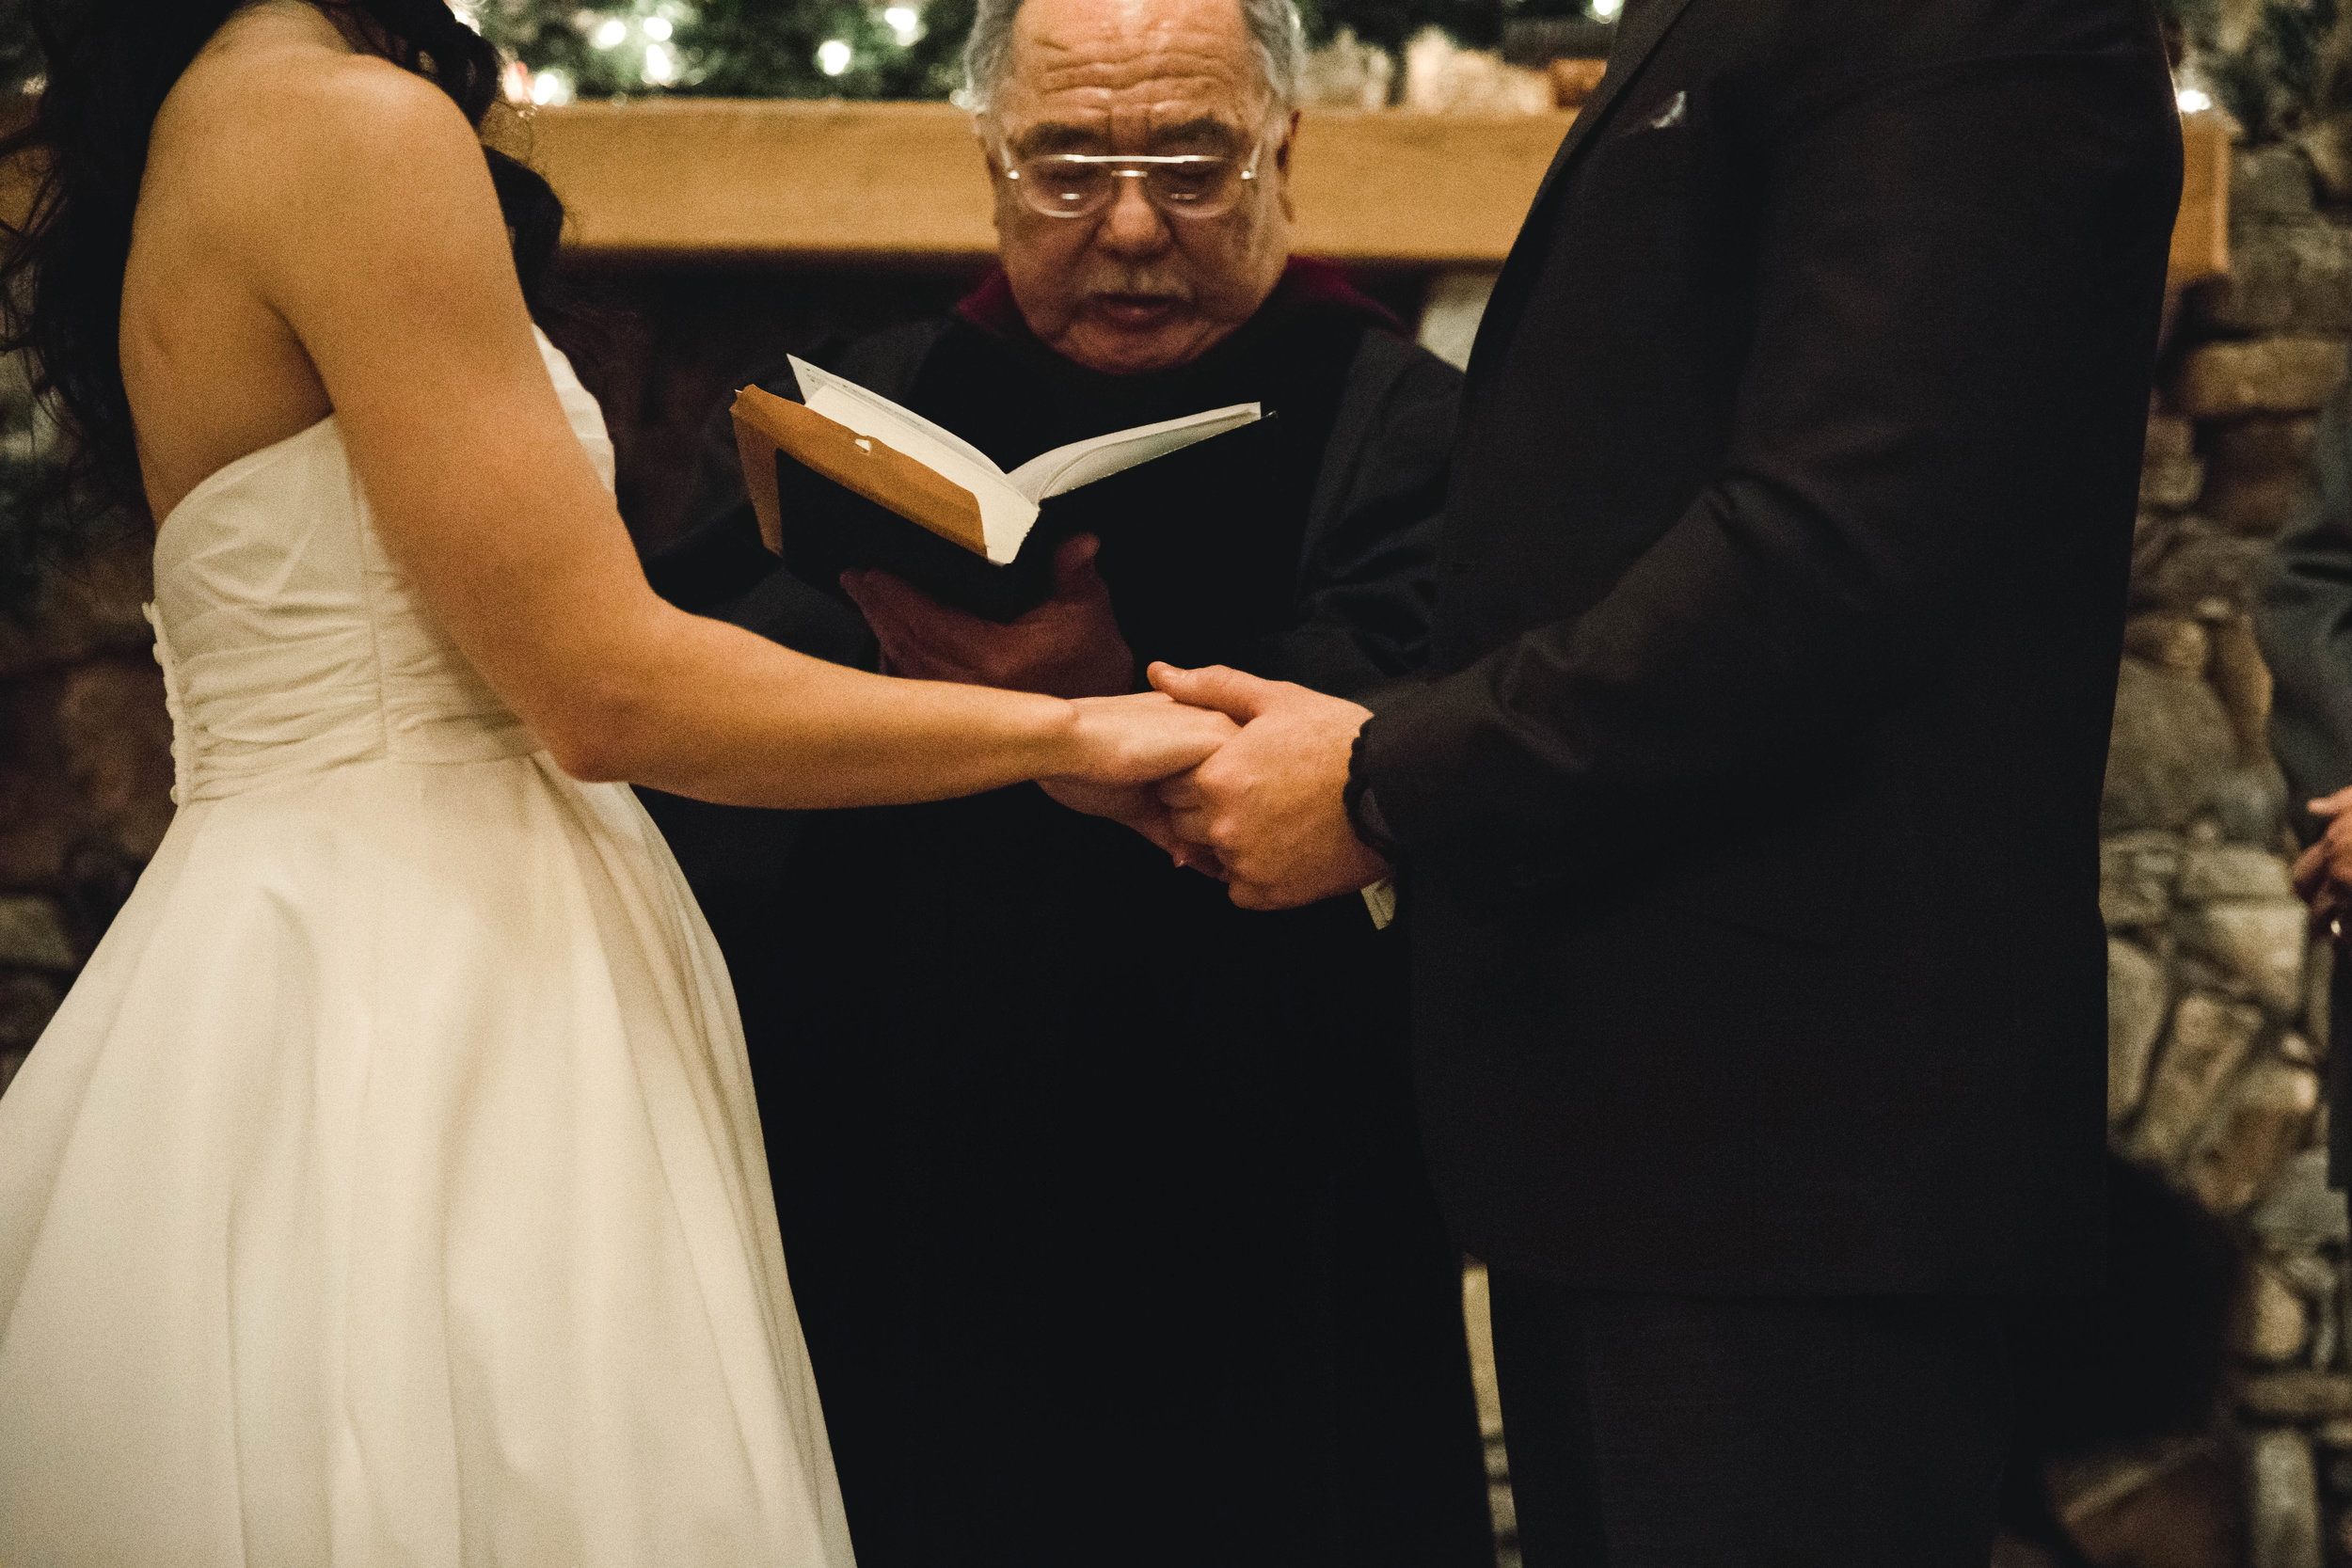 bride and groom at ceremony